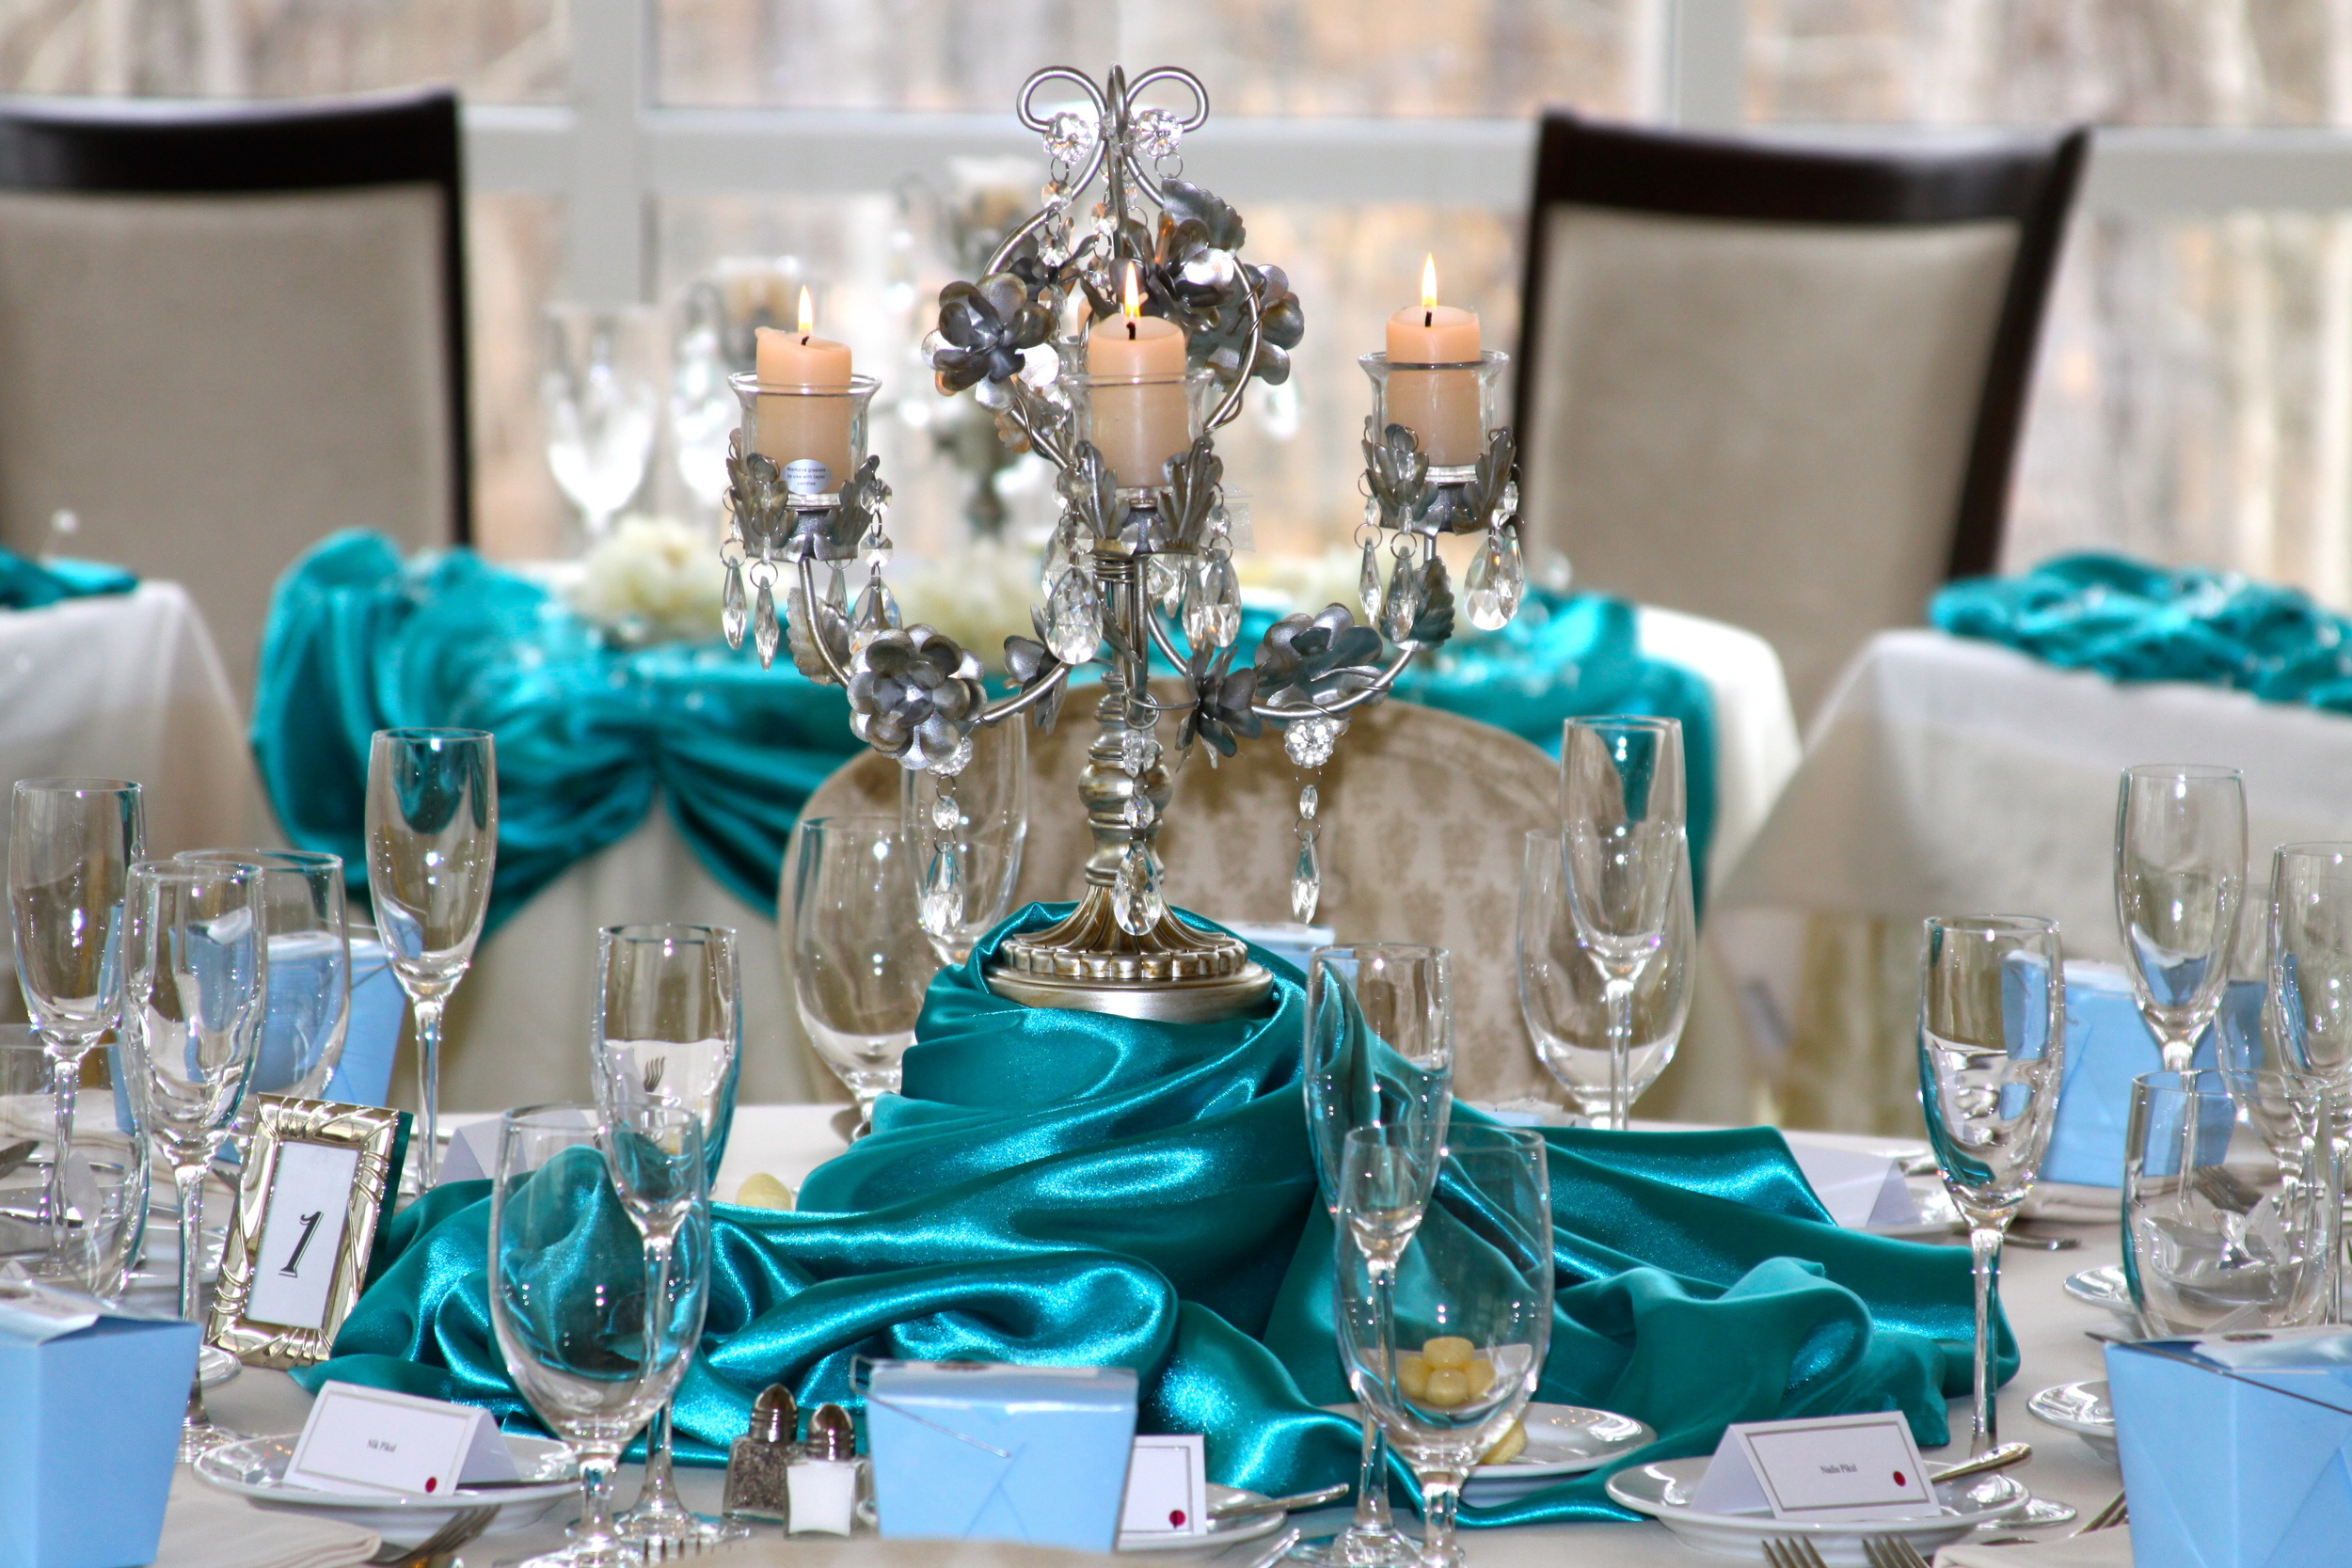 Finding the perfect decorative elements for your event can feel daunting. But don't worry, we have that covered